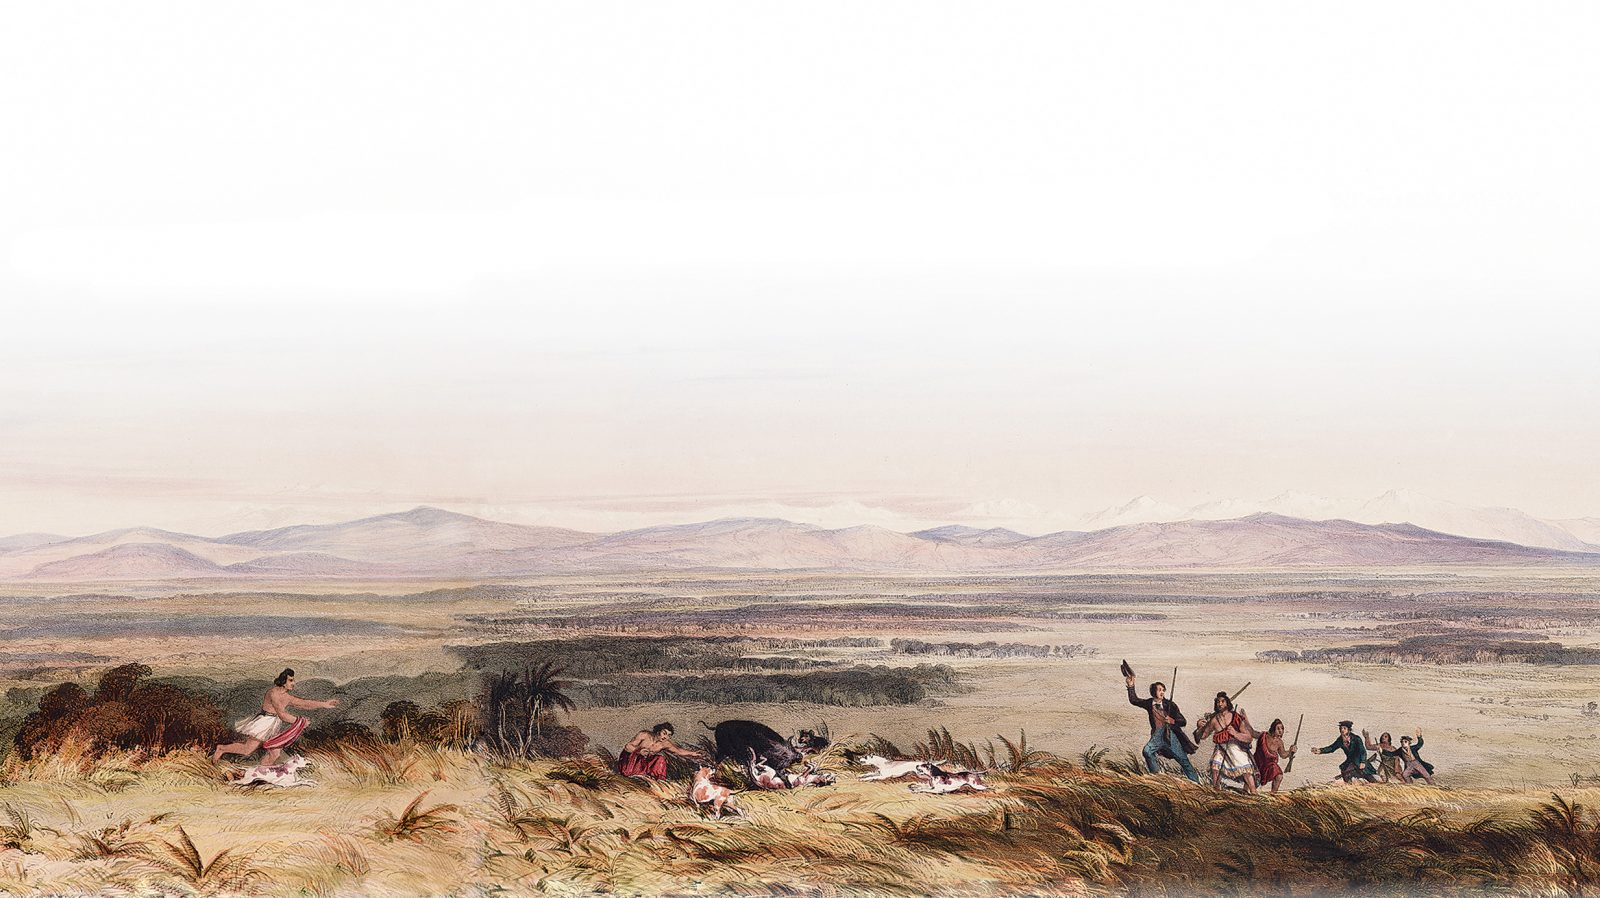 Drawn in 1843 by Samuel Charles Brees (Chief Surveyor to the New Zealand Company which undertook settlement of the Wellington region), this pioneering image of first settlement is the earliest depiction of the Ruamahanga plains. The presence of a European female some 150 years earlier would have been unfathomable.